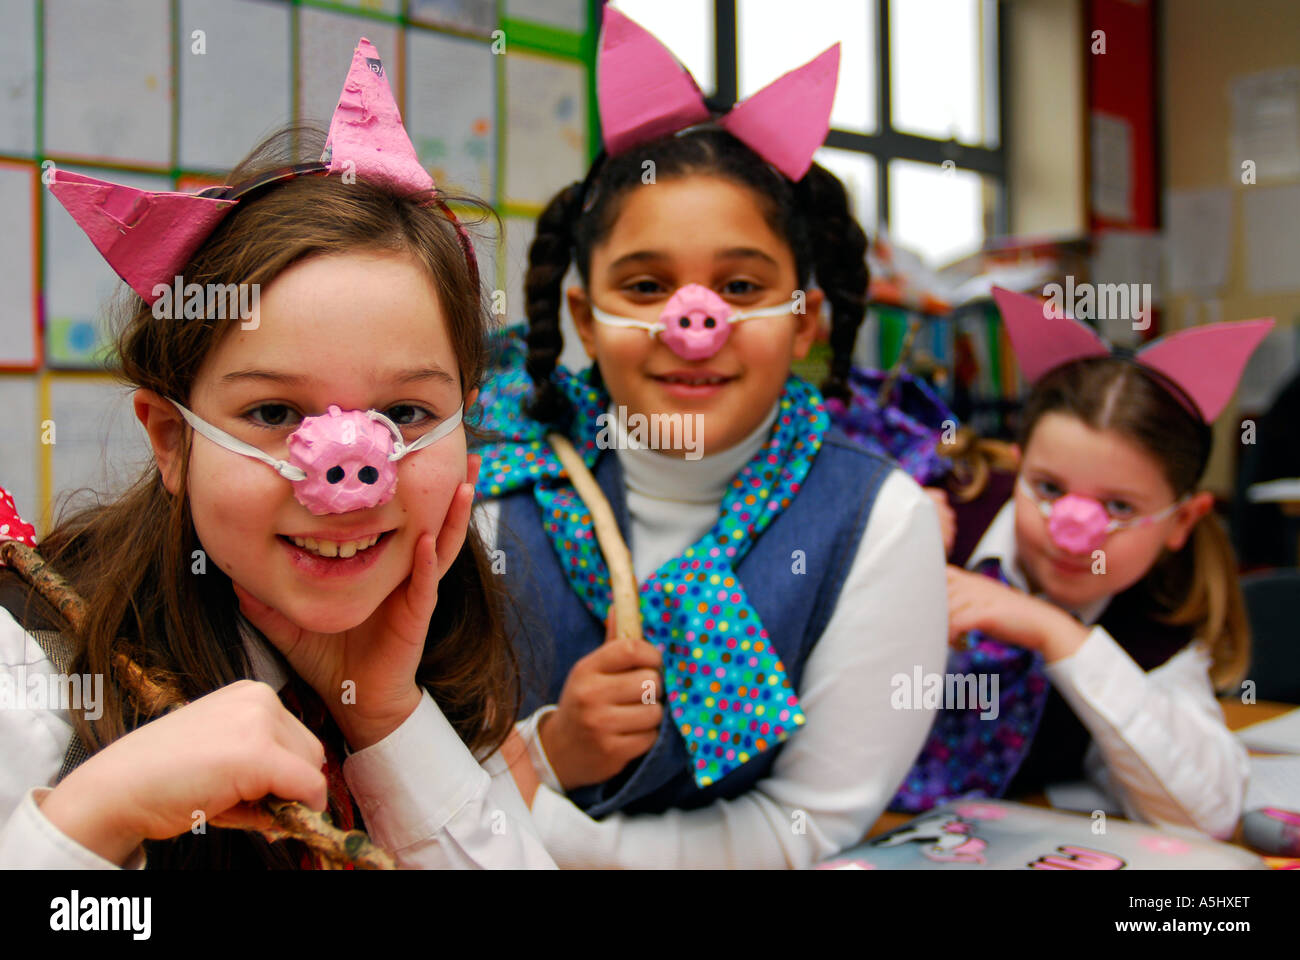 Infant school pupils dressed as characters from The Three Little Pigs as part of National Book Week, Surbiton, UK. - Stock Image